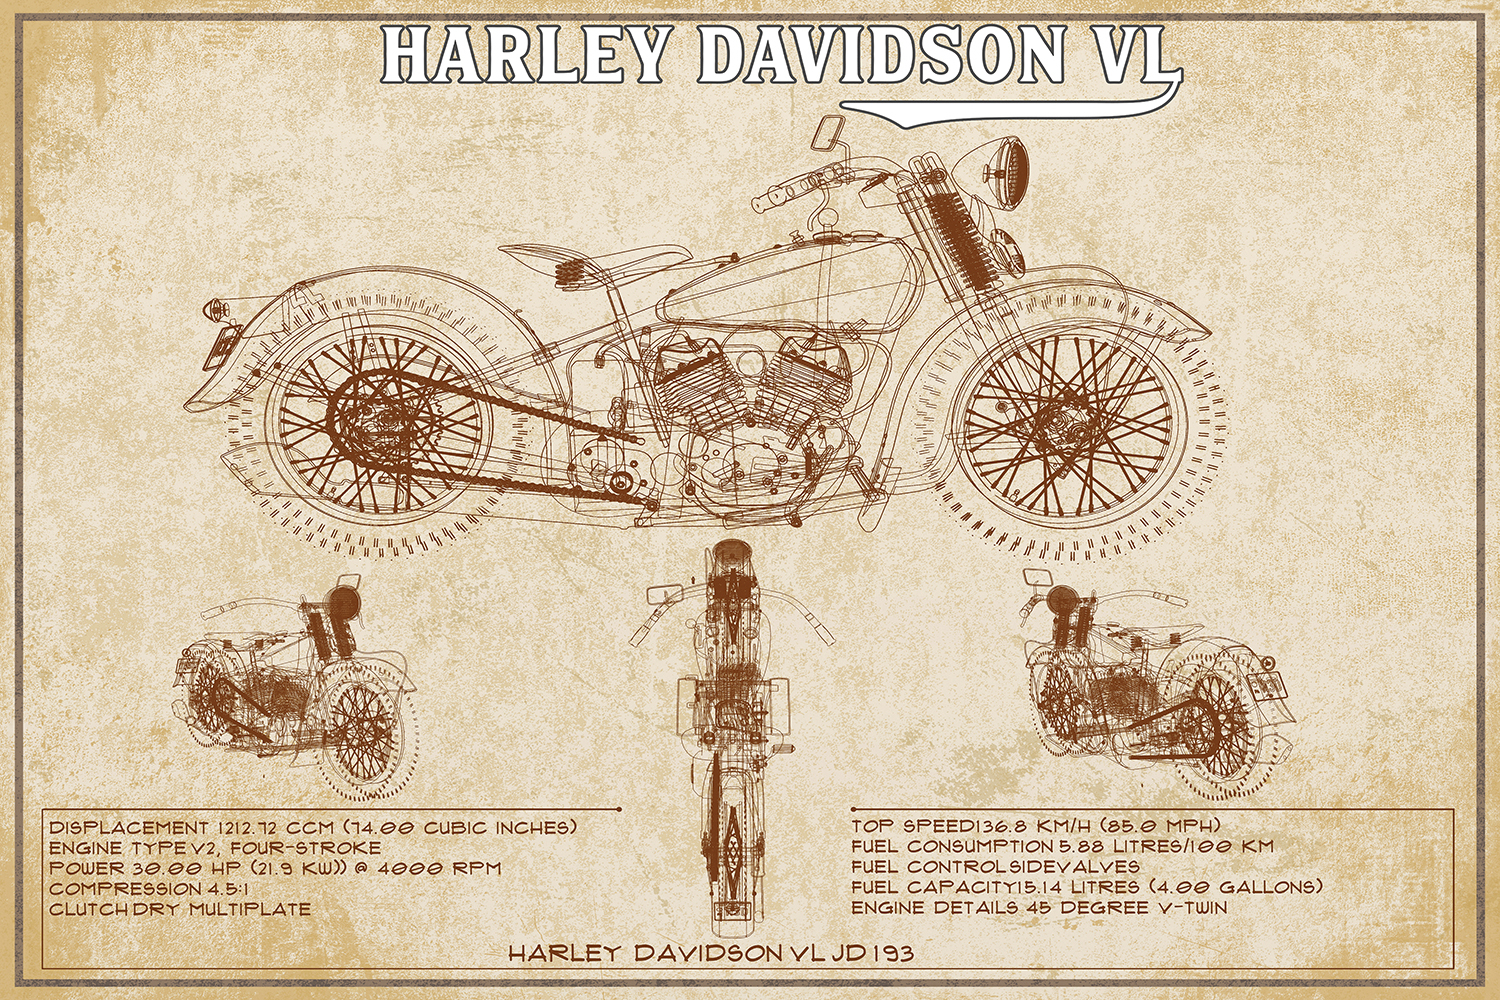 Beige blueprint of a Harley Davidson motorcycle with facts on the bottom